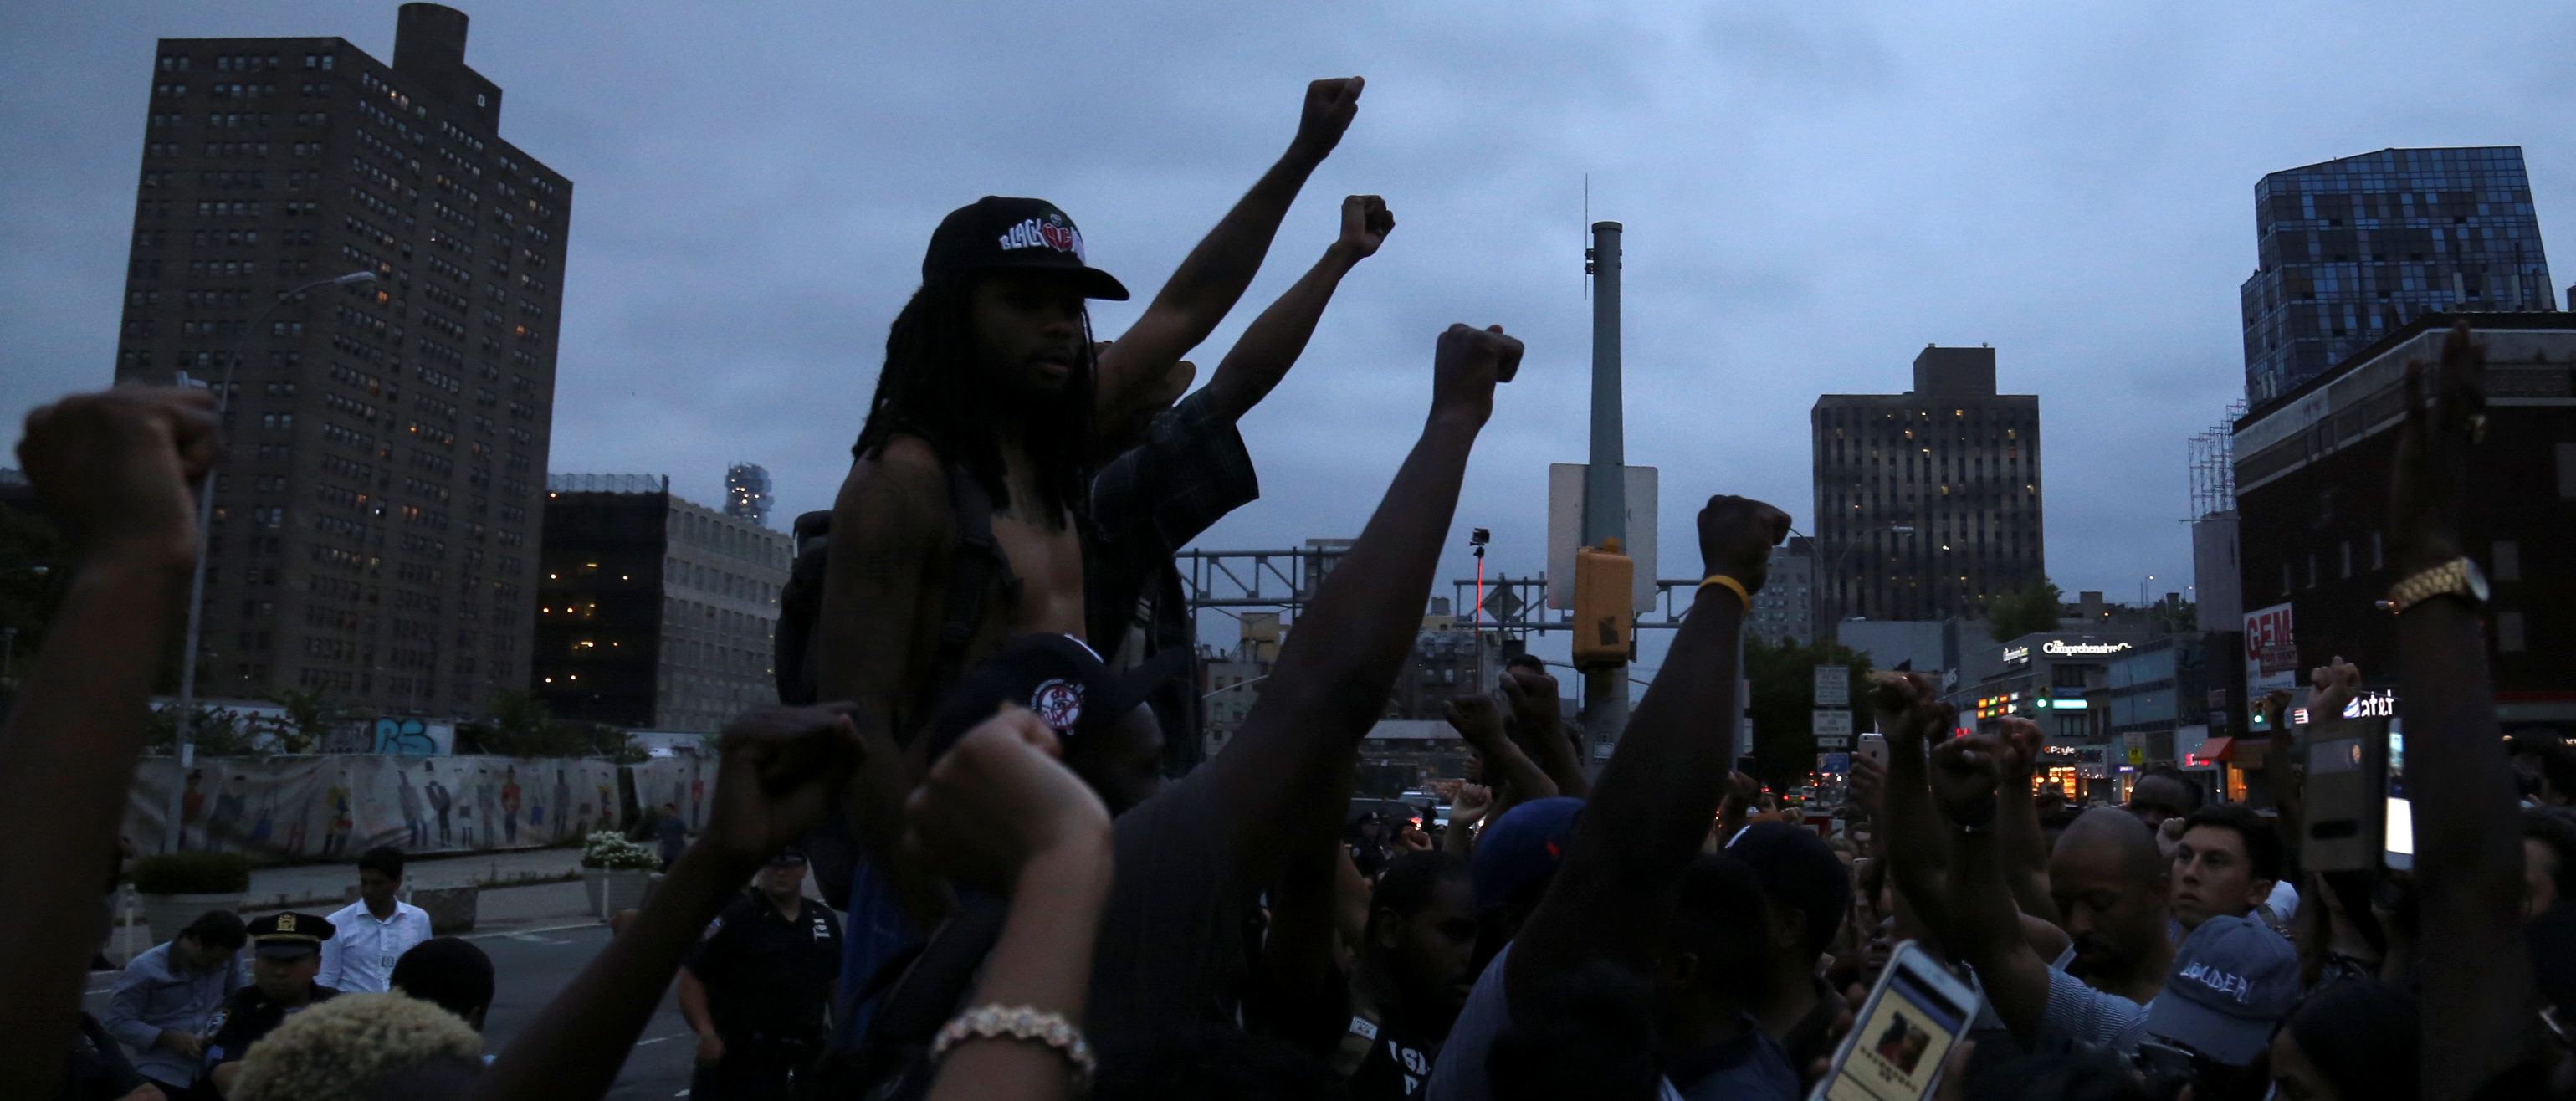 Protesters raise their hands in solidarity as they prepare to march across the Williamsburg Bridge against police brutality in Manhattan, New York, U.S., July 8, 2016. REUTERS/Bria Webb